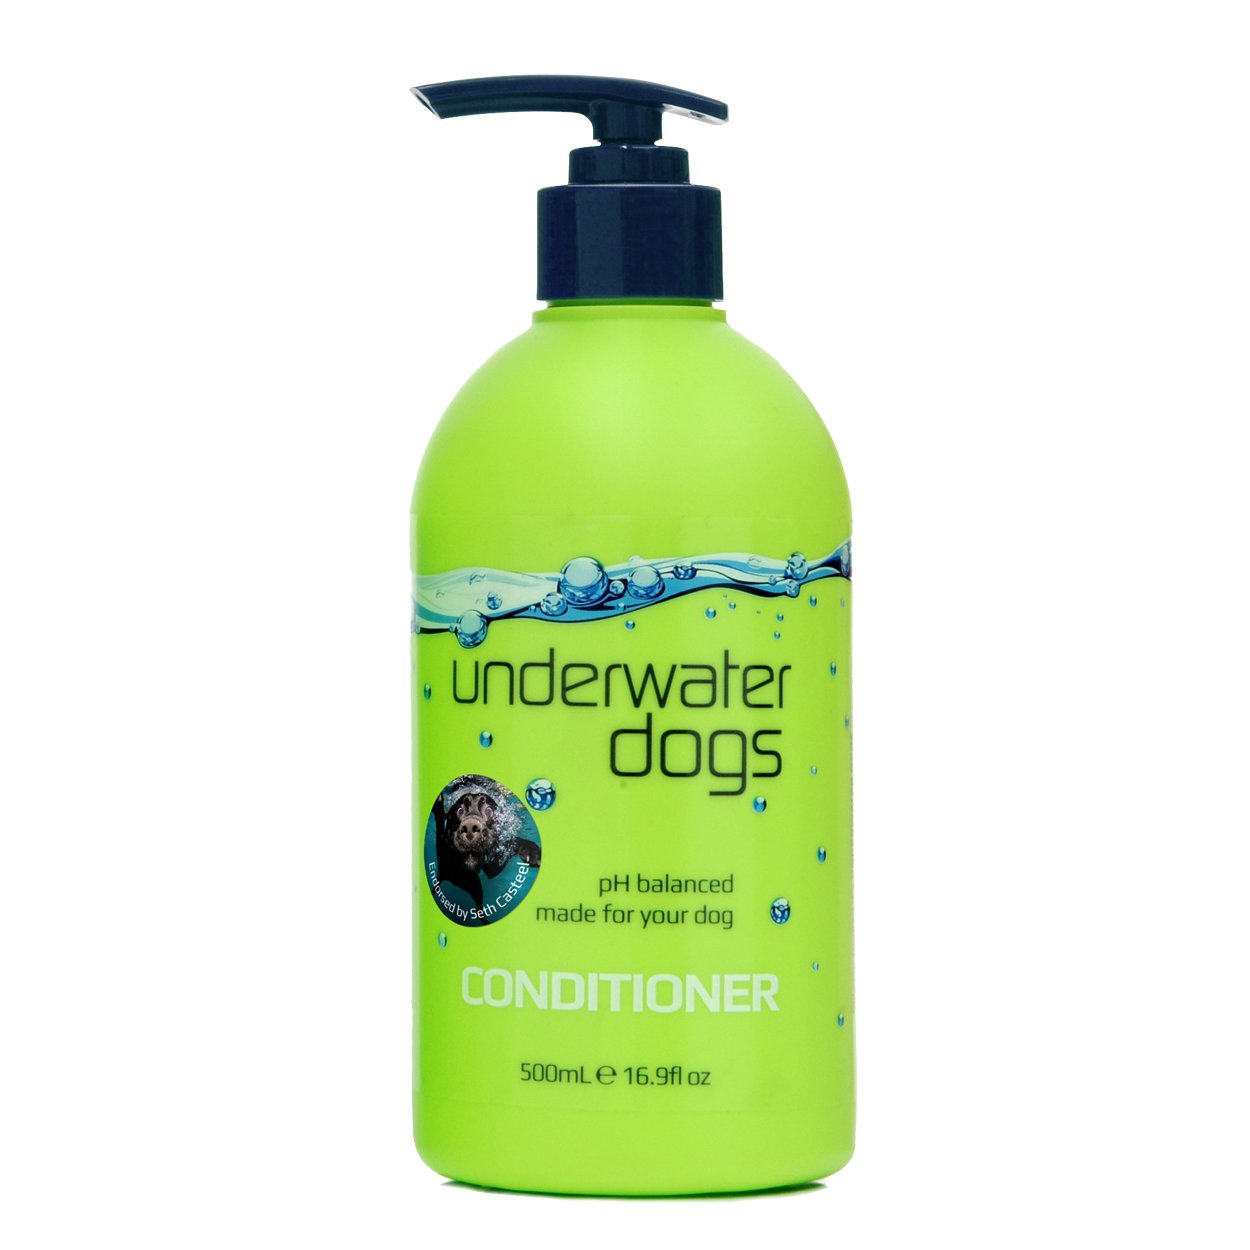 Underwater Dogs Conditioner for Itchy Skin - 16.9 Fluid Ounces of Soap-Free, pH Balanced, Moisturizing Dog Conditioner Detangler - Coconut Fragrance by Underwater Dogs (Image #1)